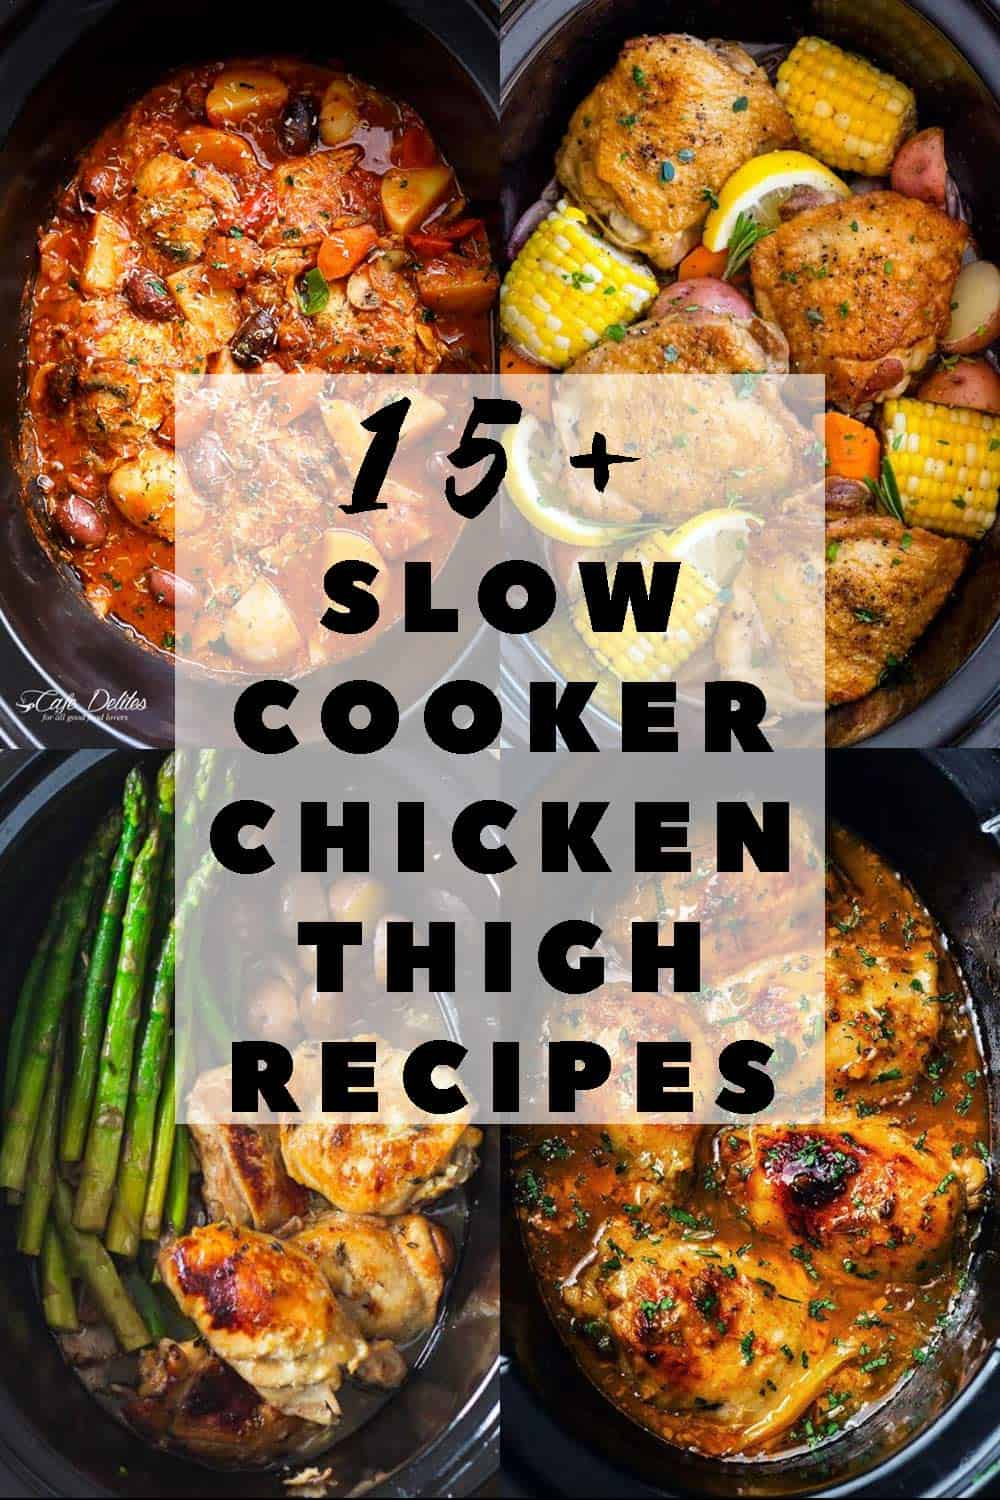 The 15 Best Slow Cooker Chicken Thigh Recipes Green Healthy Cooking